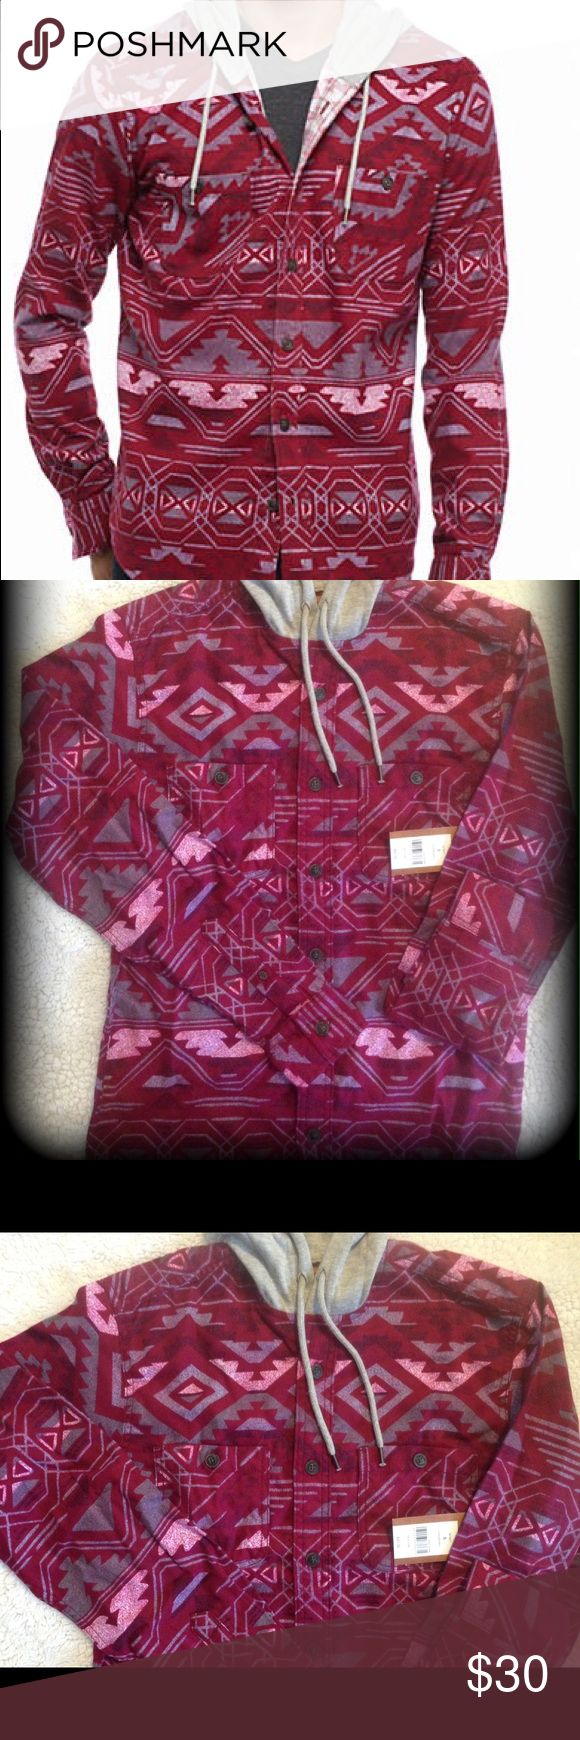 Hooded Tribal flannel Color is called Cranberry. Button up. Two front button close pockets. Button sleeve. Grey drawstring hoodie. Rounded shirttail design at bottom. I think this could def be a unisex shirt. Great looking tribal designs. Red Camel Shirts Sweatshirts & Hoodies